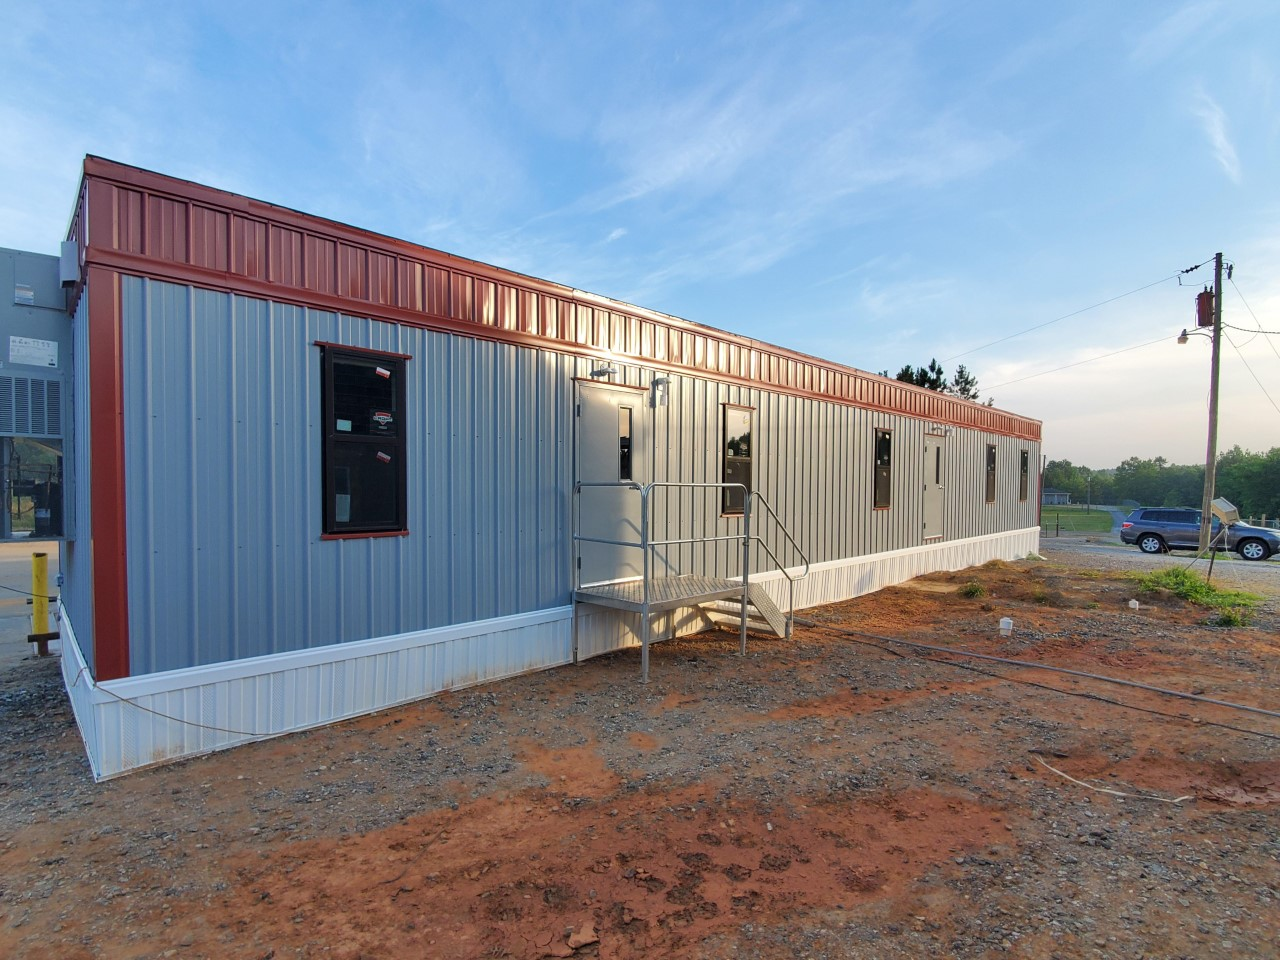 Lunenburg Landfill Gets A New Scale House